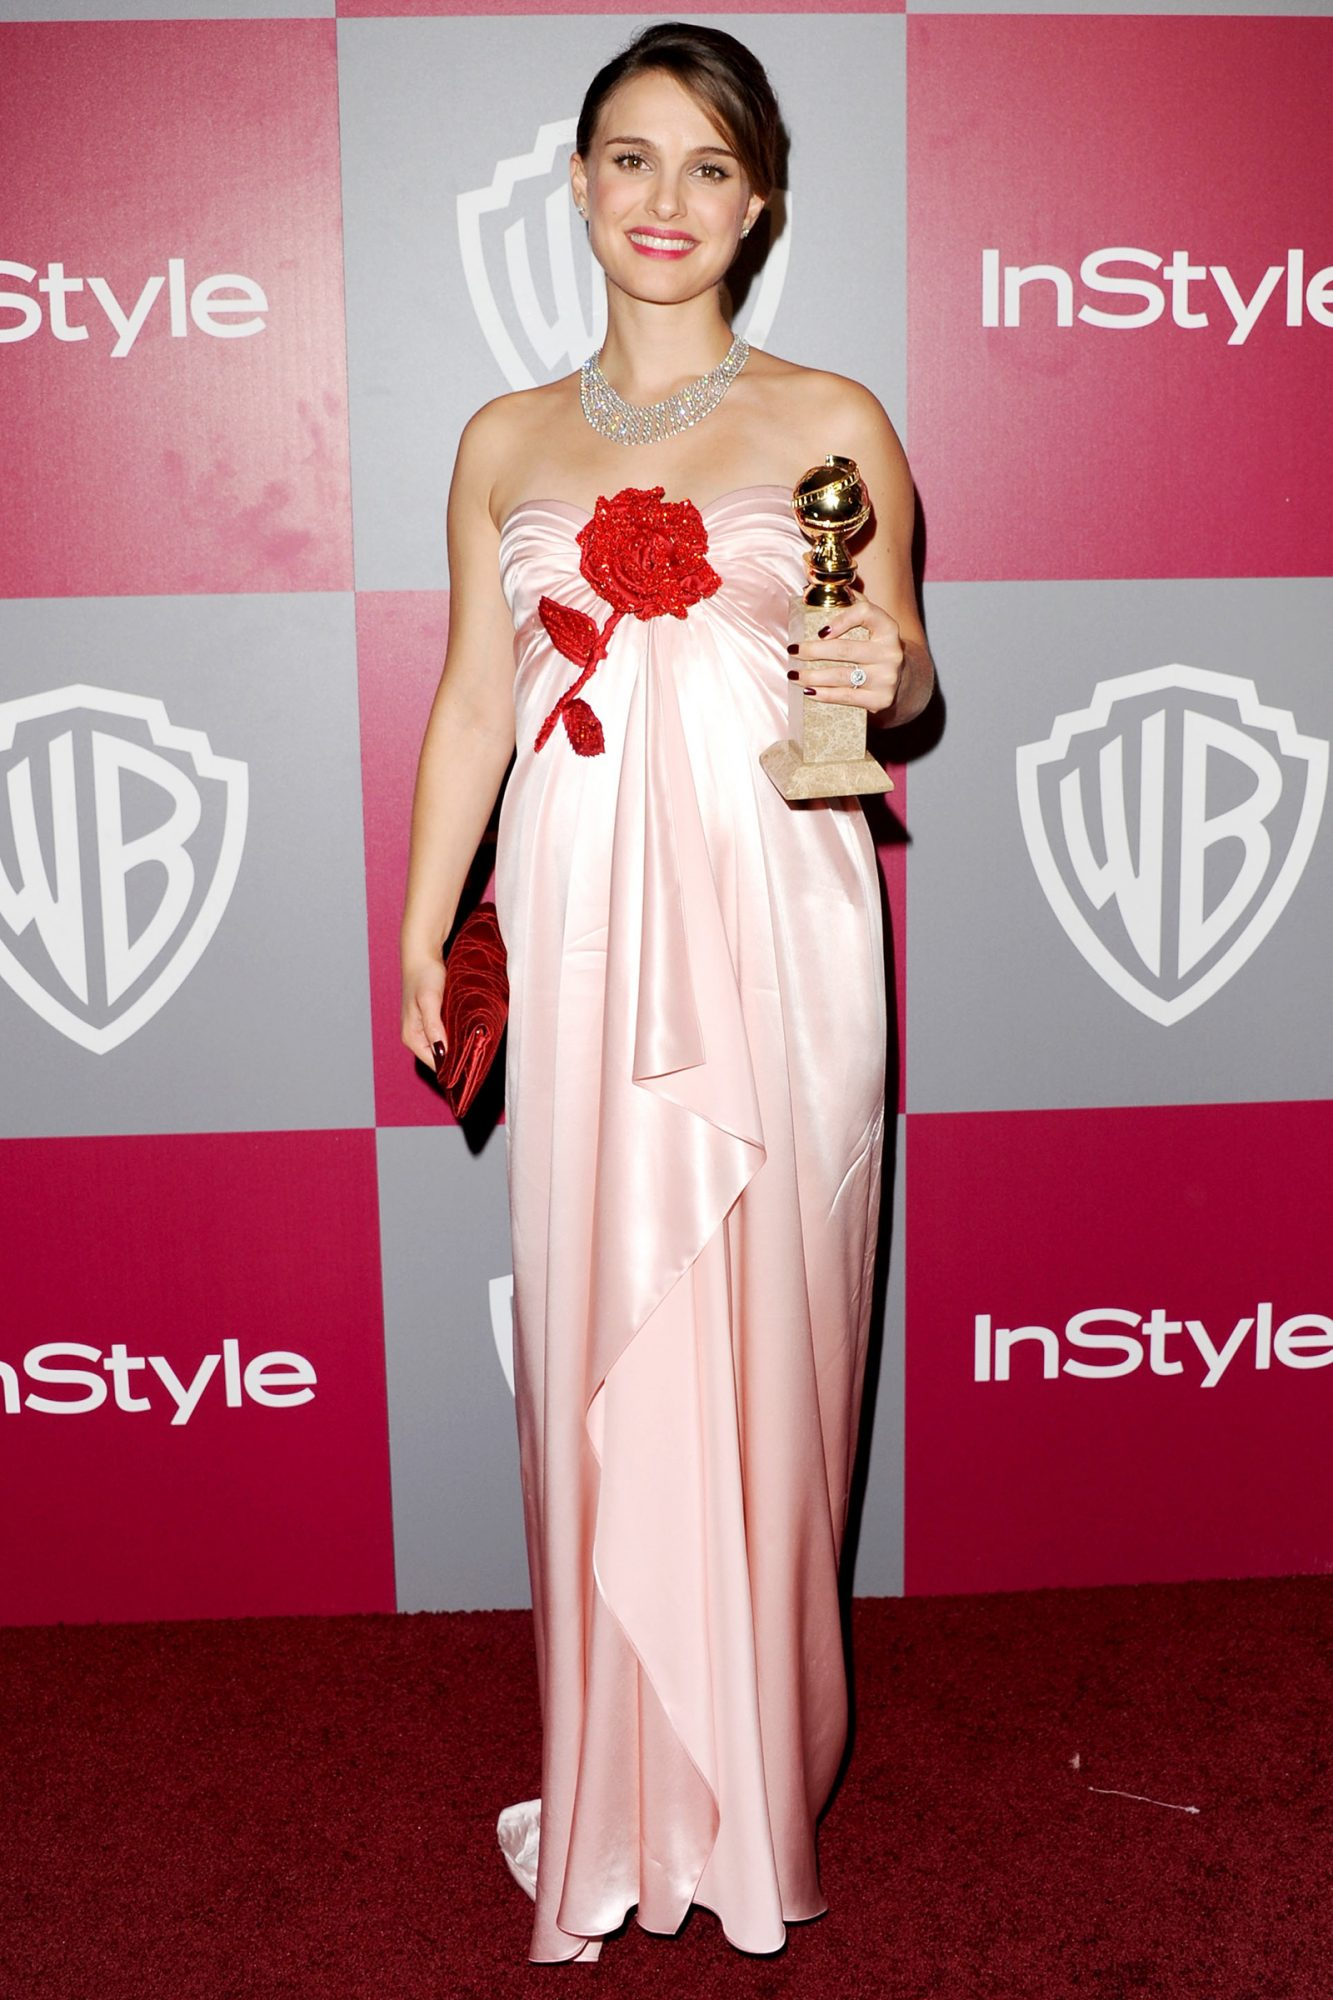 Natalie Portman arrives at the 2011 InStyle/Warner Brothers Golden Globes Party at The Beverly Hilton hotel